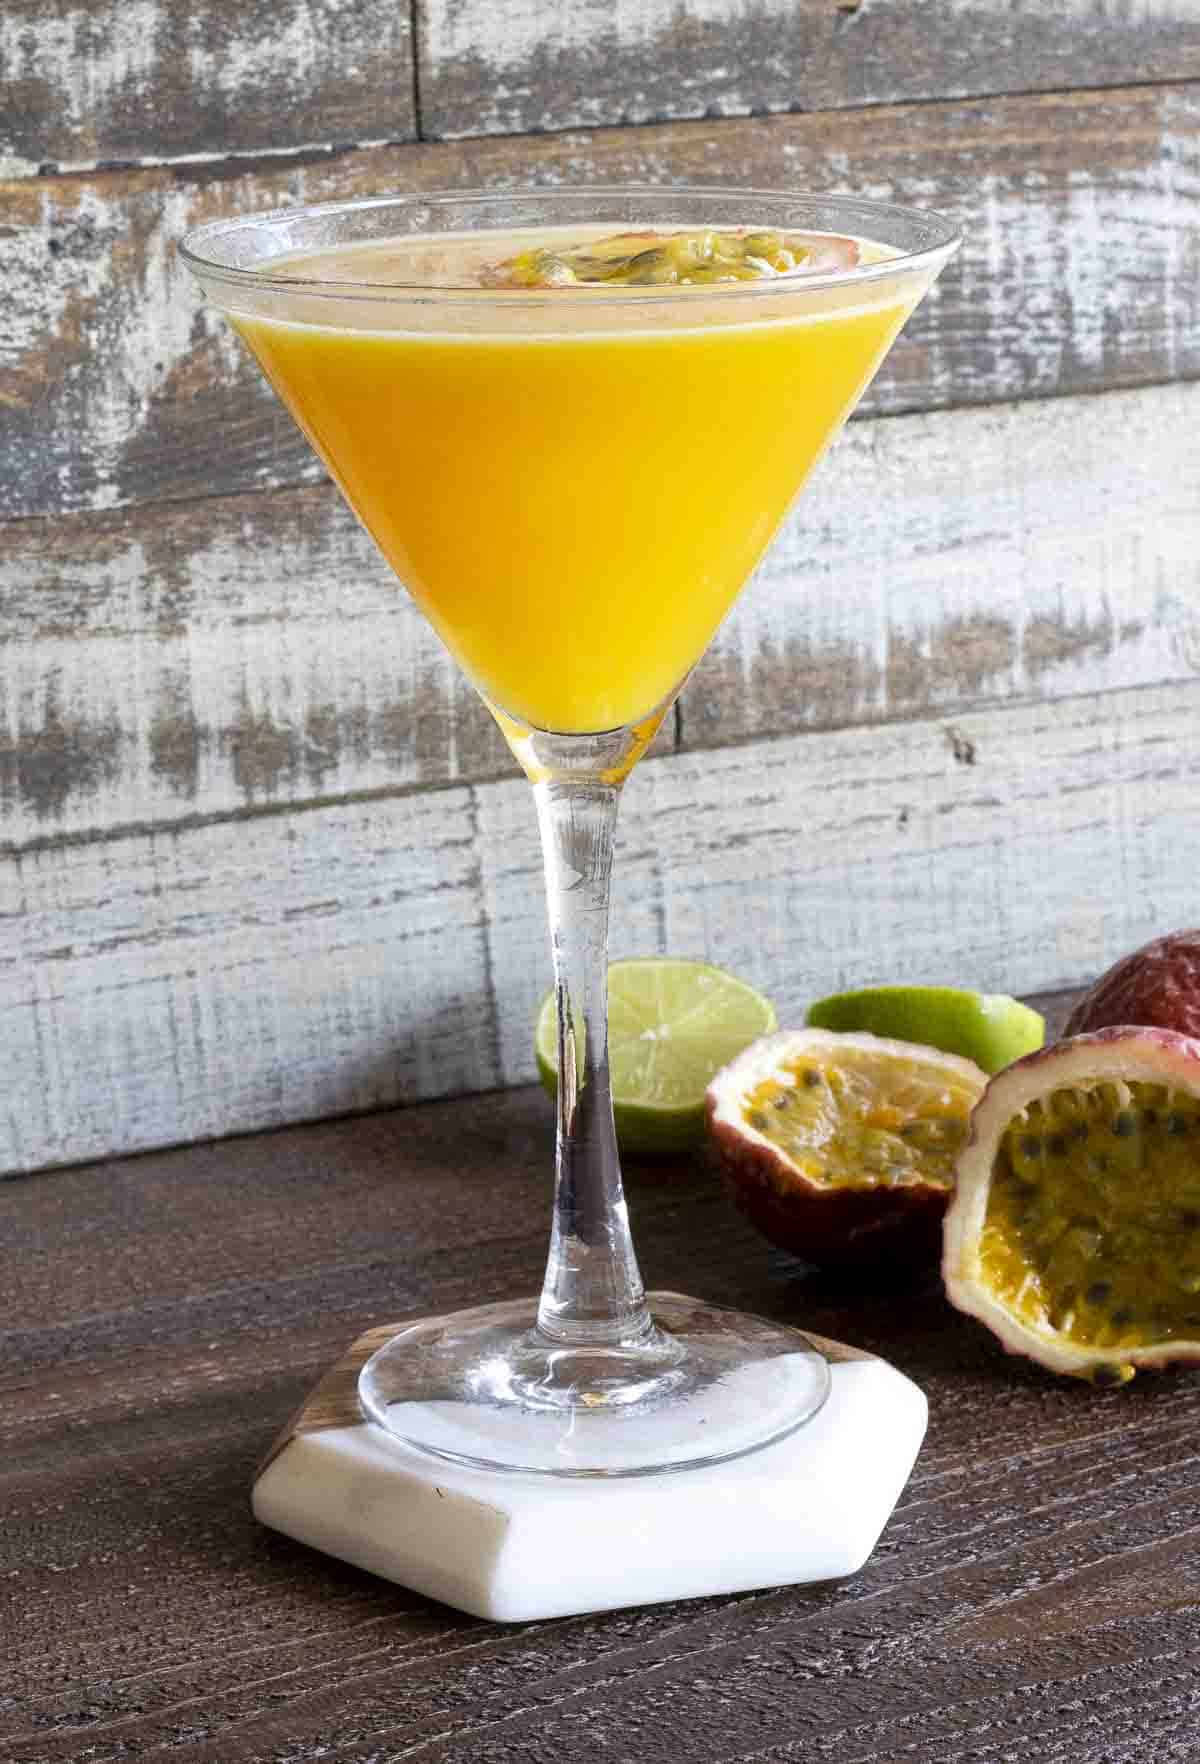 Passion fruit martini in a martini glass with limes and passion fruit on table.